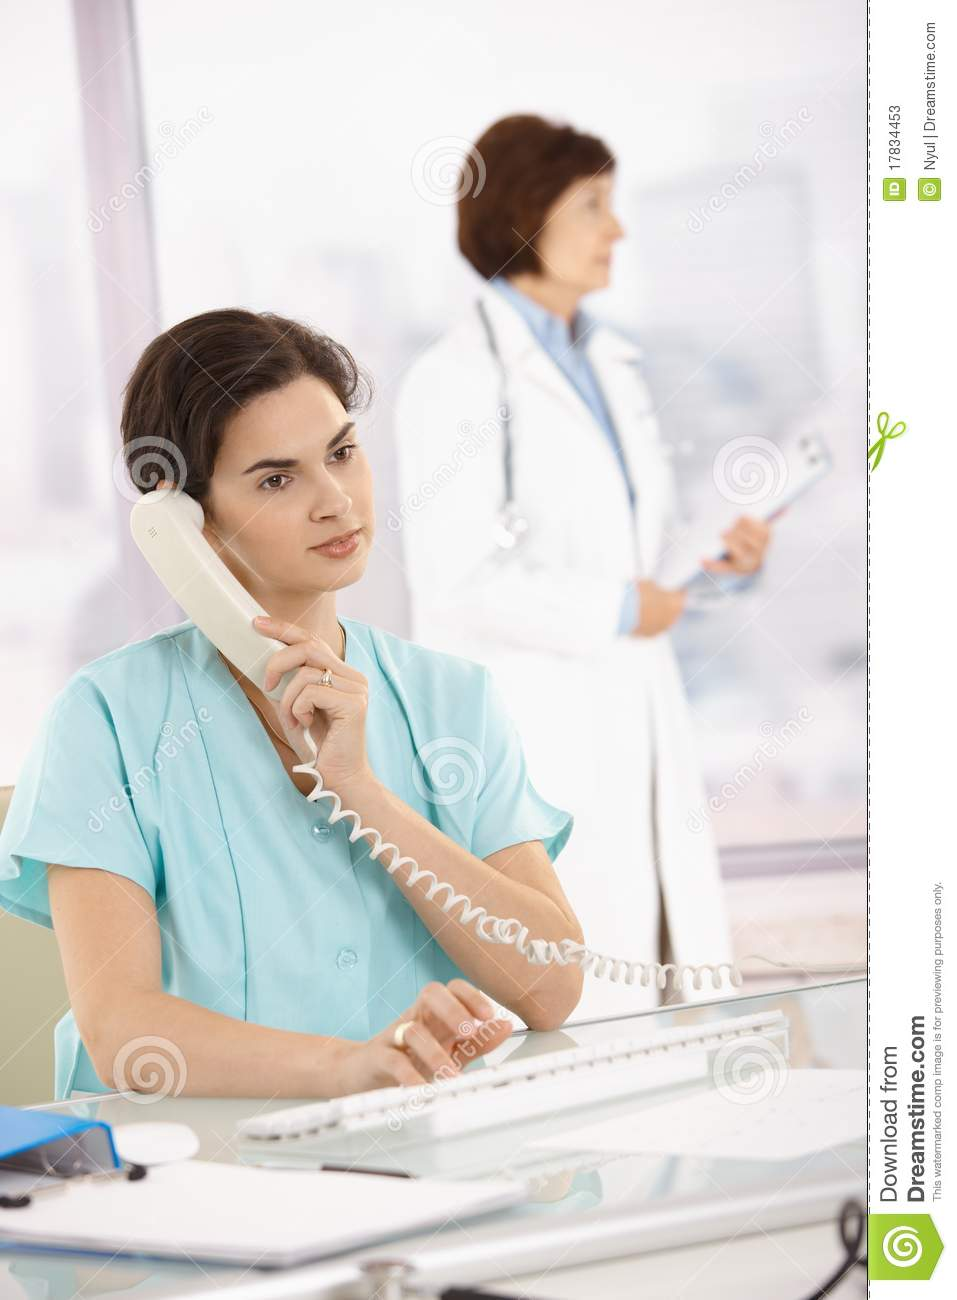 Assistant taking phone call for medical doctor